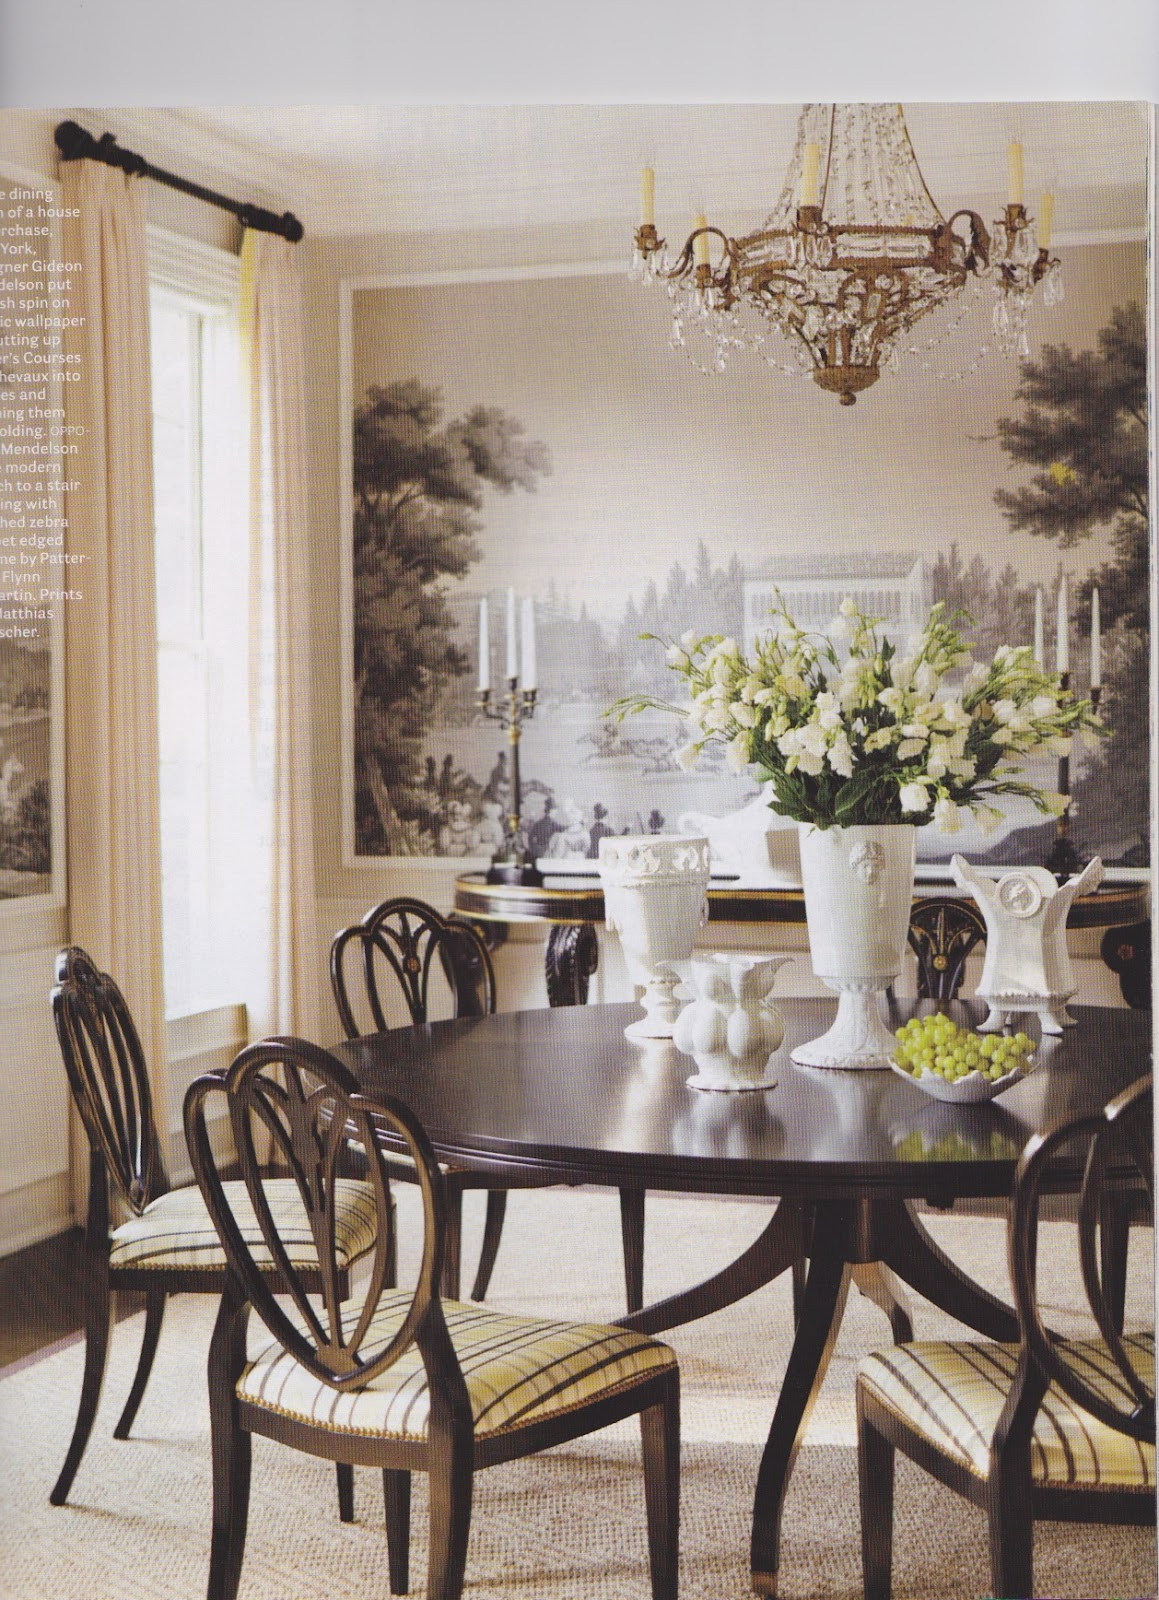 sybaritic spaces: delightful dining rooms